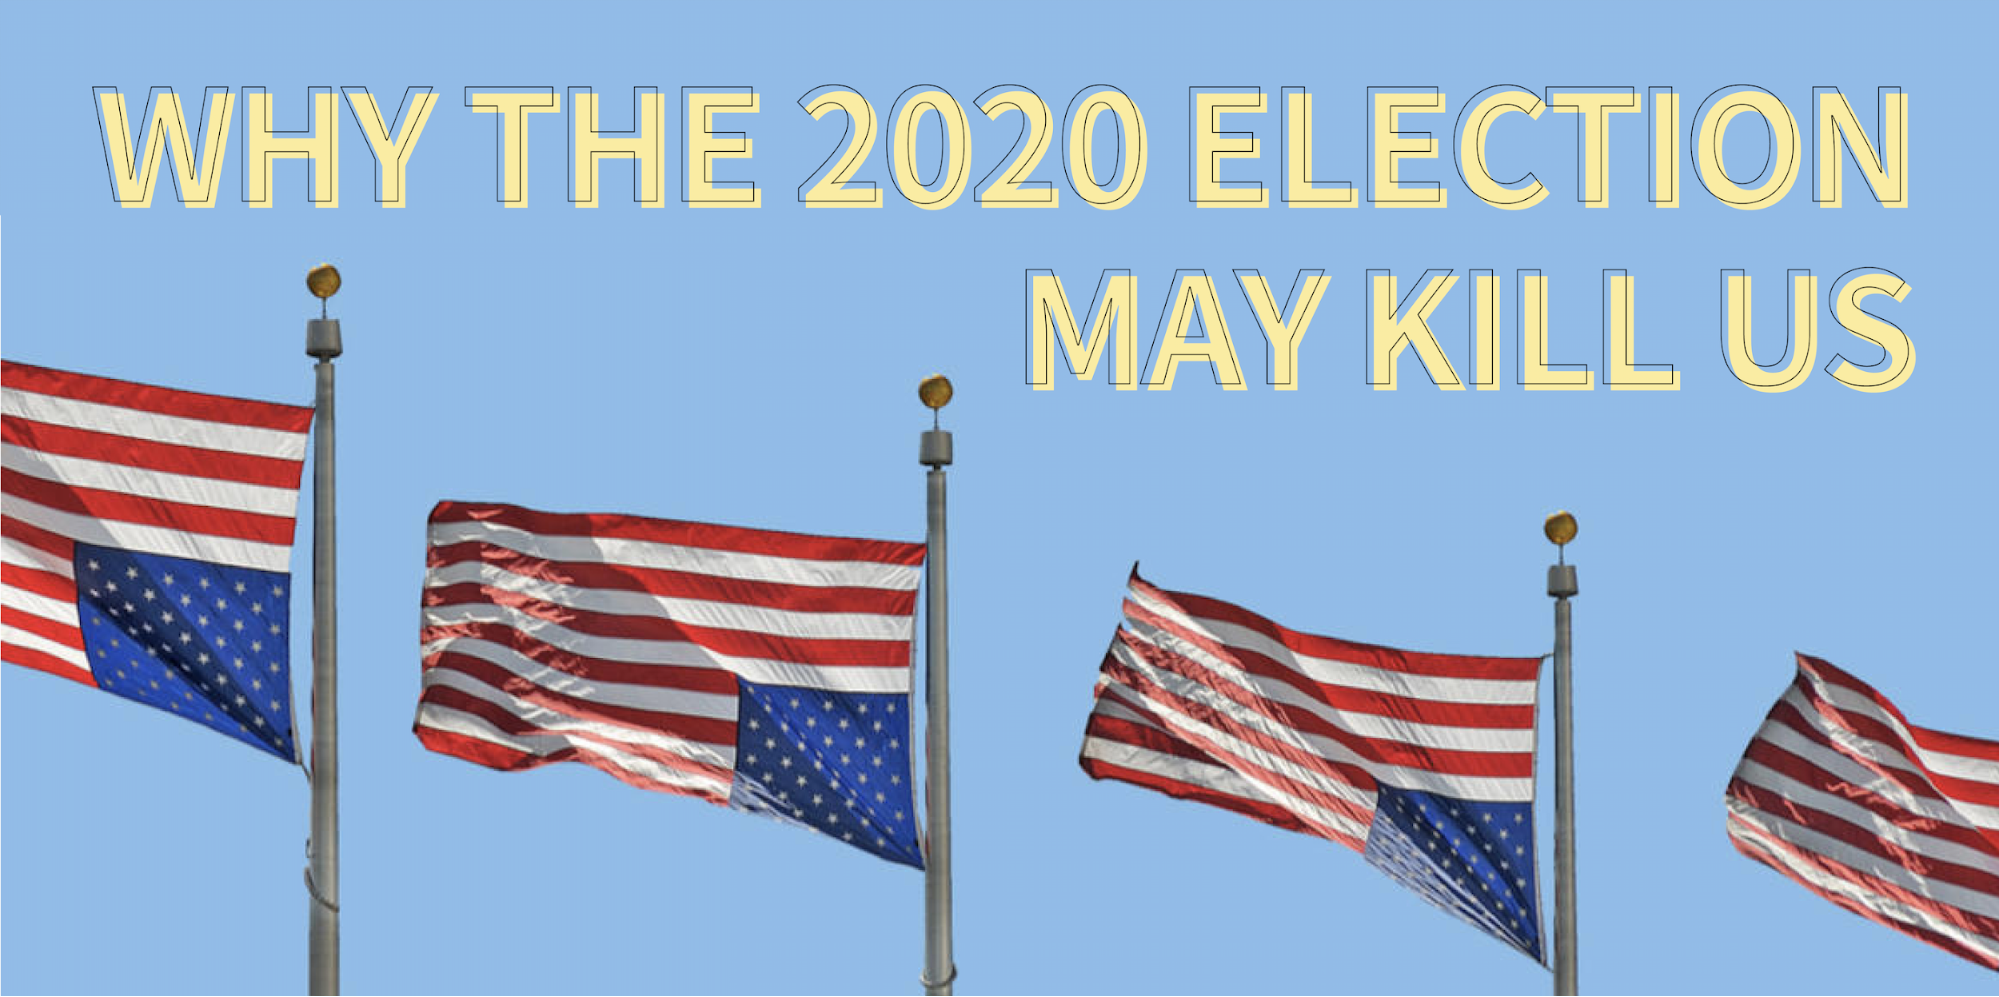 Why the 2020 Election May Kill Us?